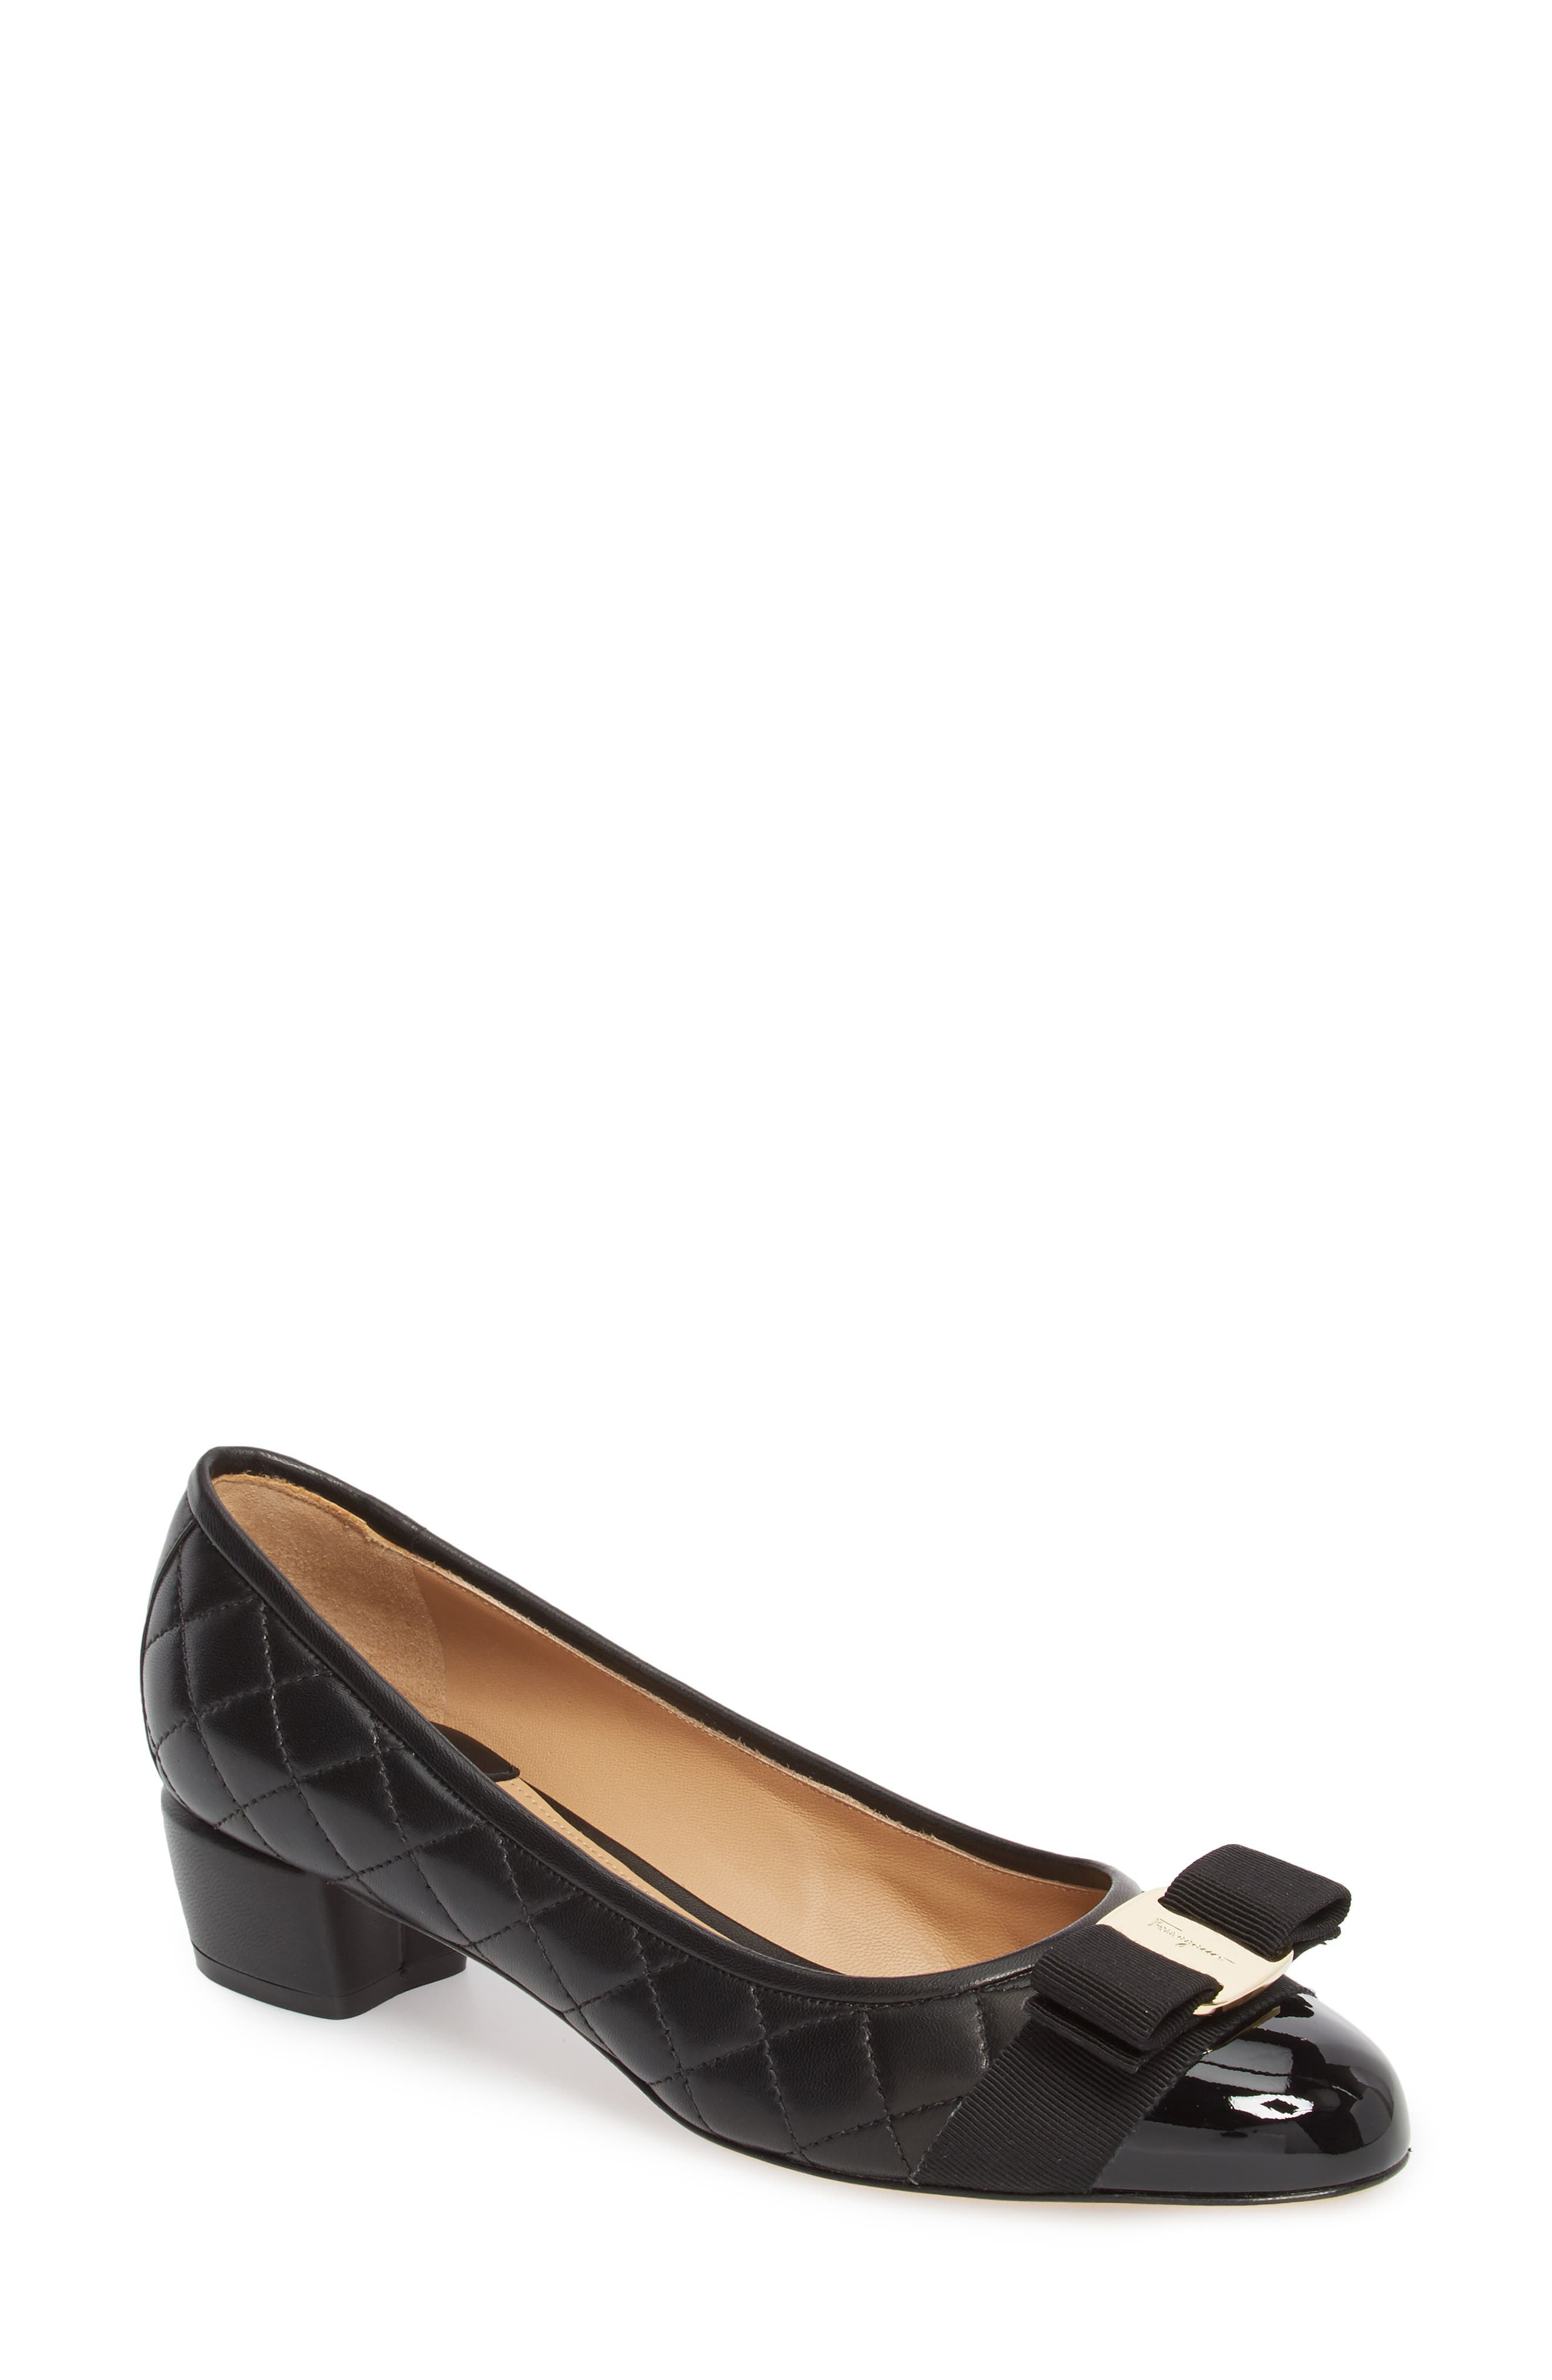 Main Image - Salvatore Ferragamo Vara Pump (Women)